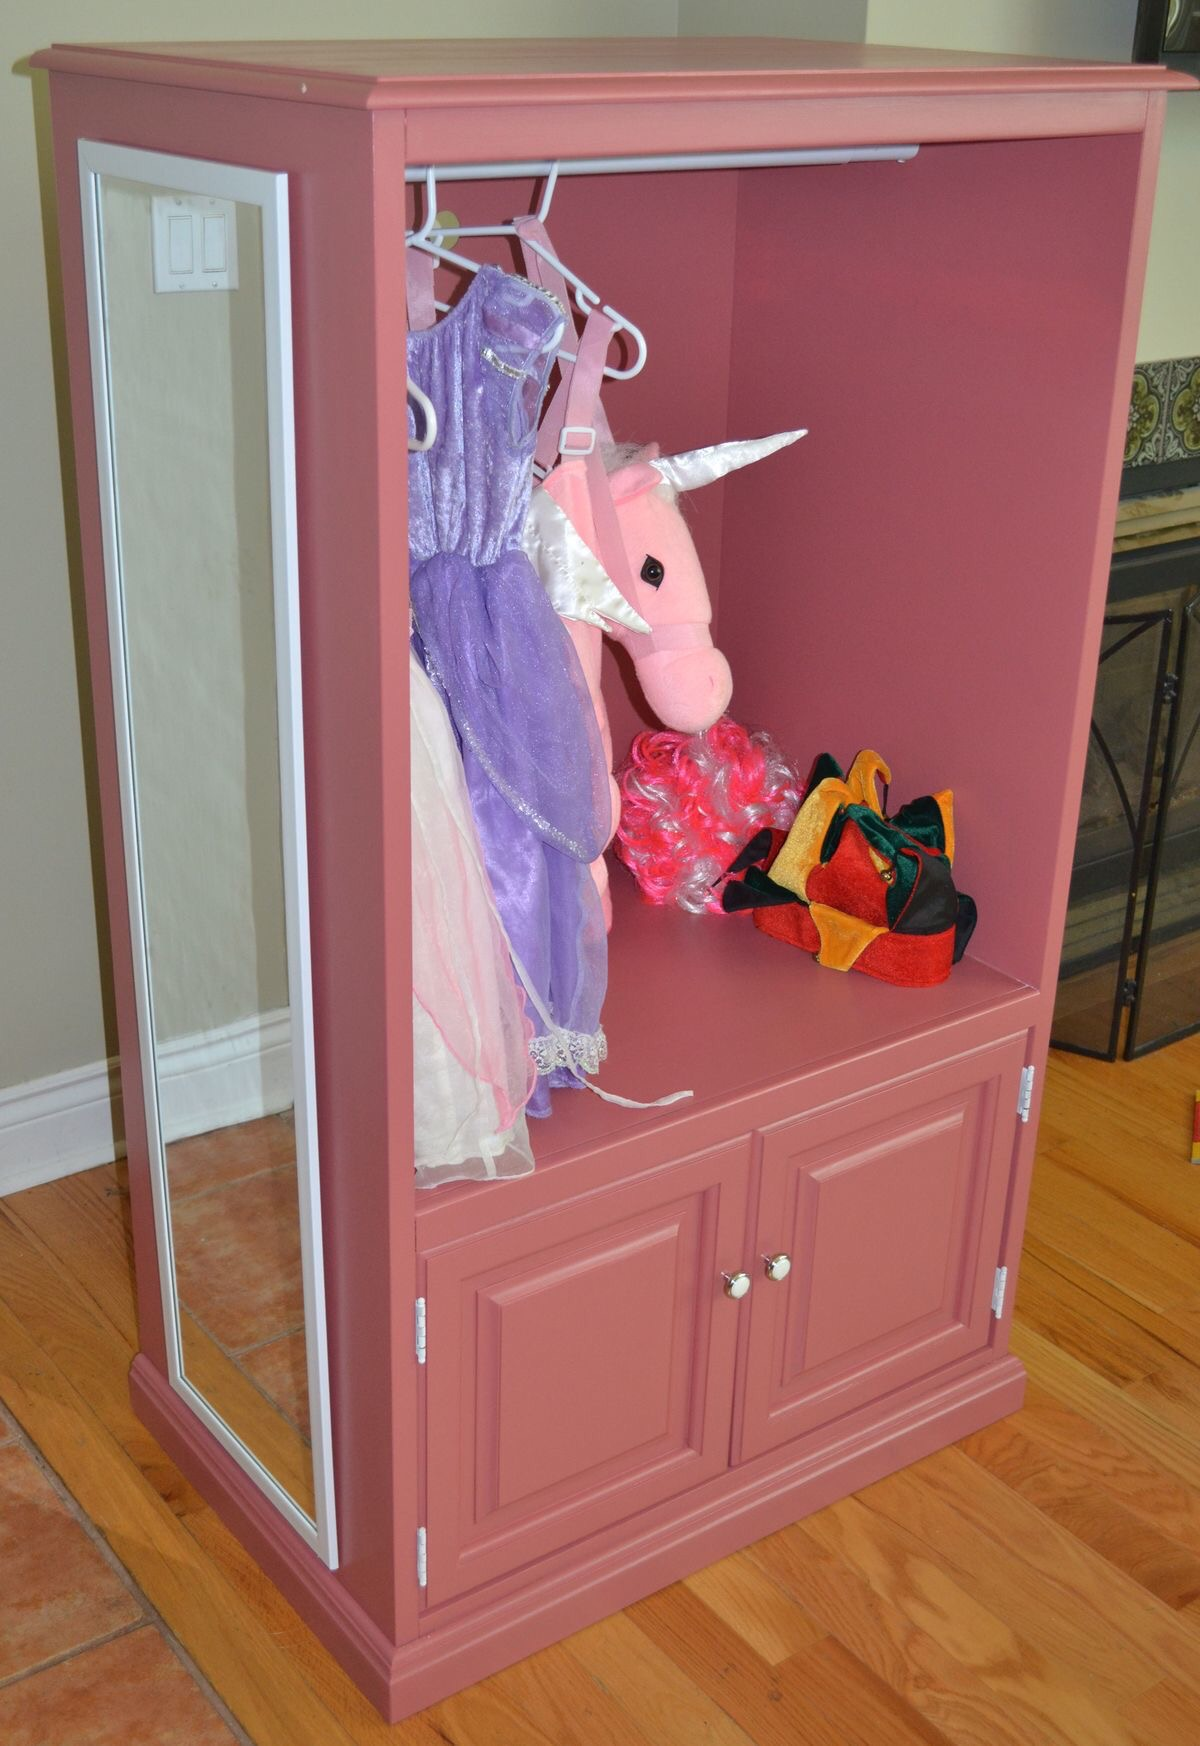 The DIY Version Is To Use An Old Dresser Or TV Unit To Turn It Into A  Little Girls Dream Dress Up Closet. But After Pricing Out A Closet Rod,  Paint, ...